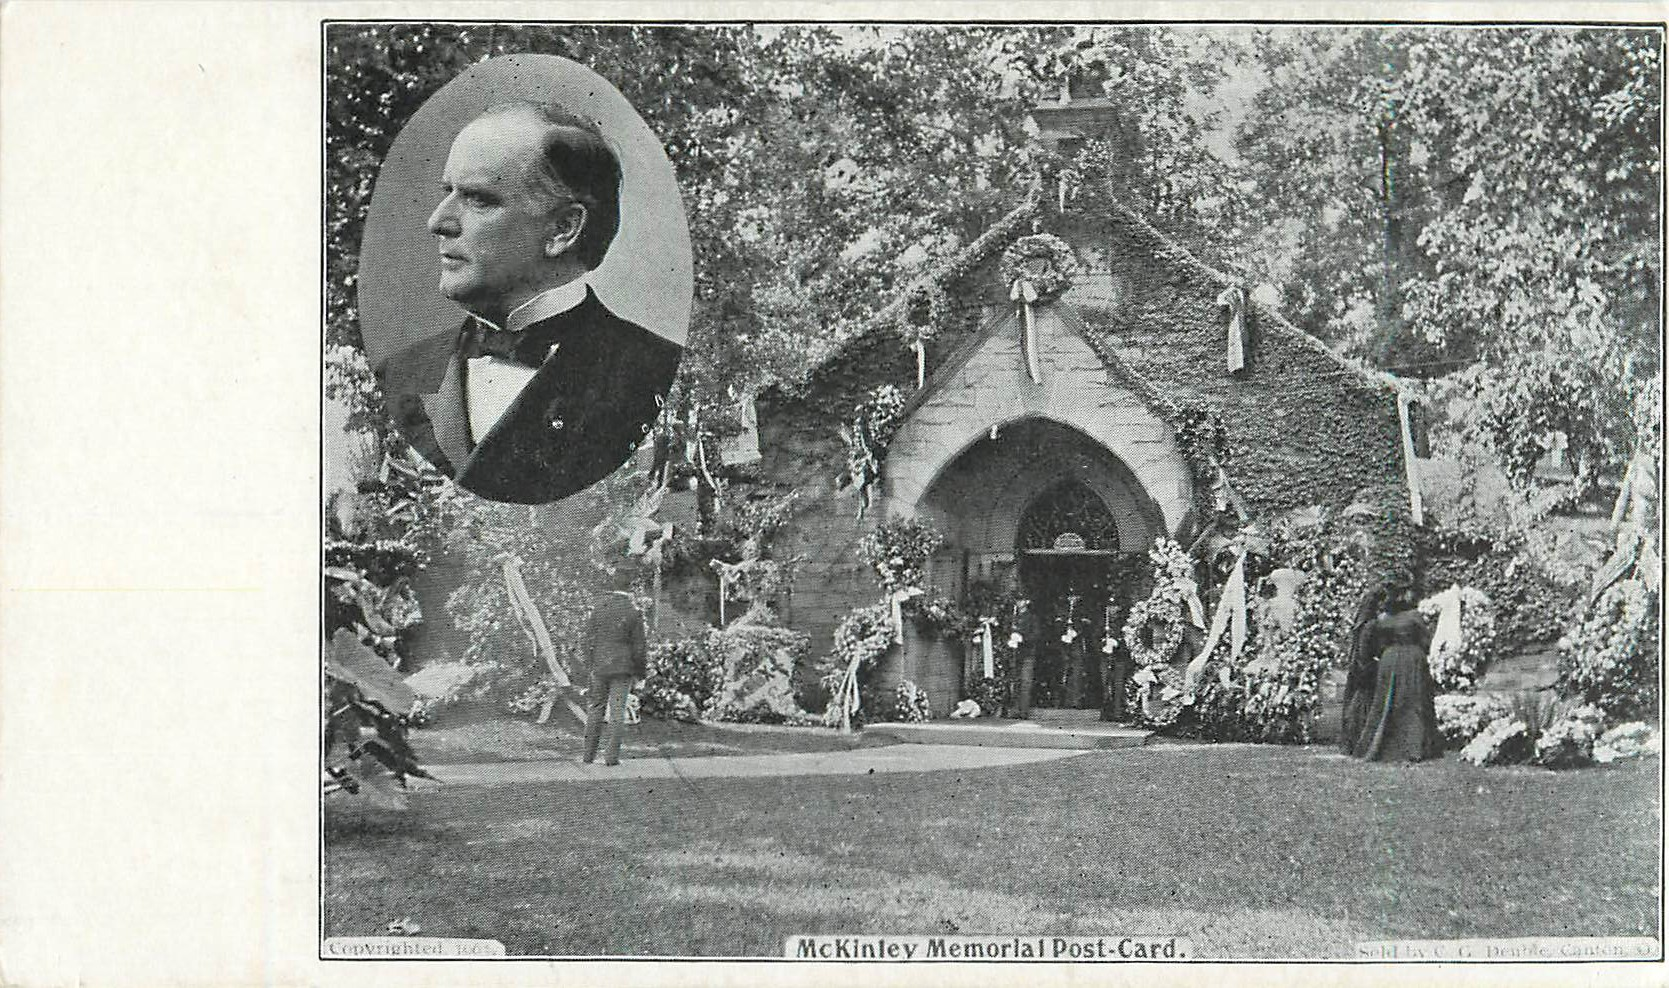 McKinley Memorial Post-card.